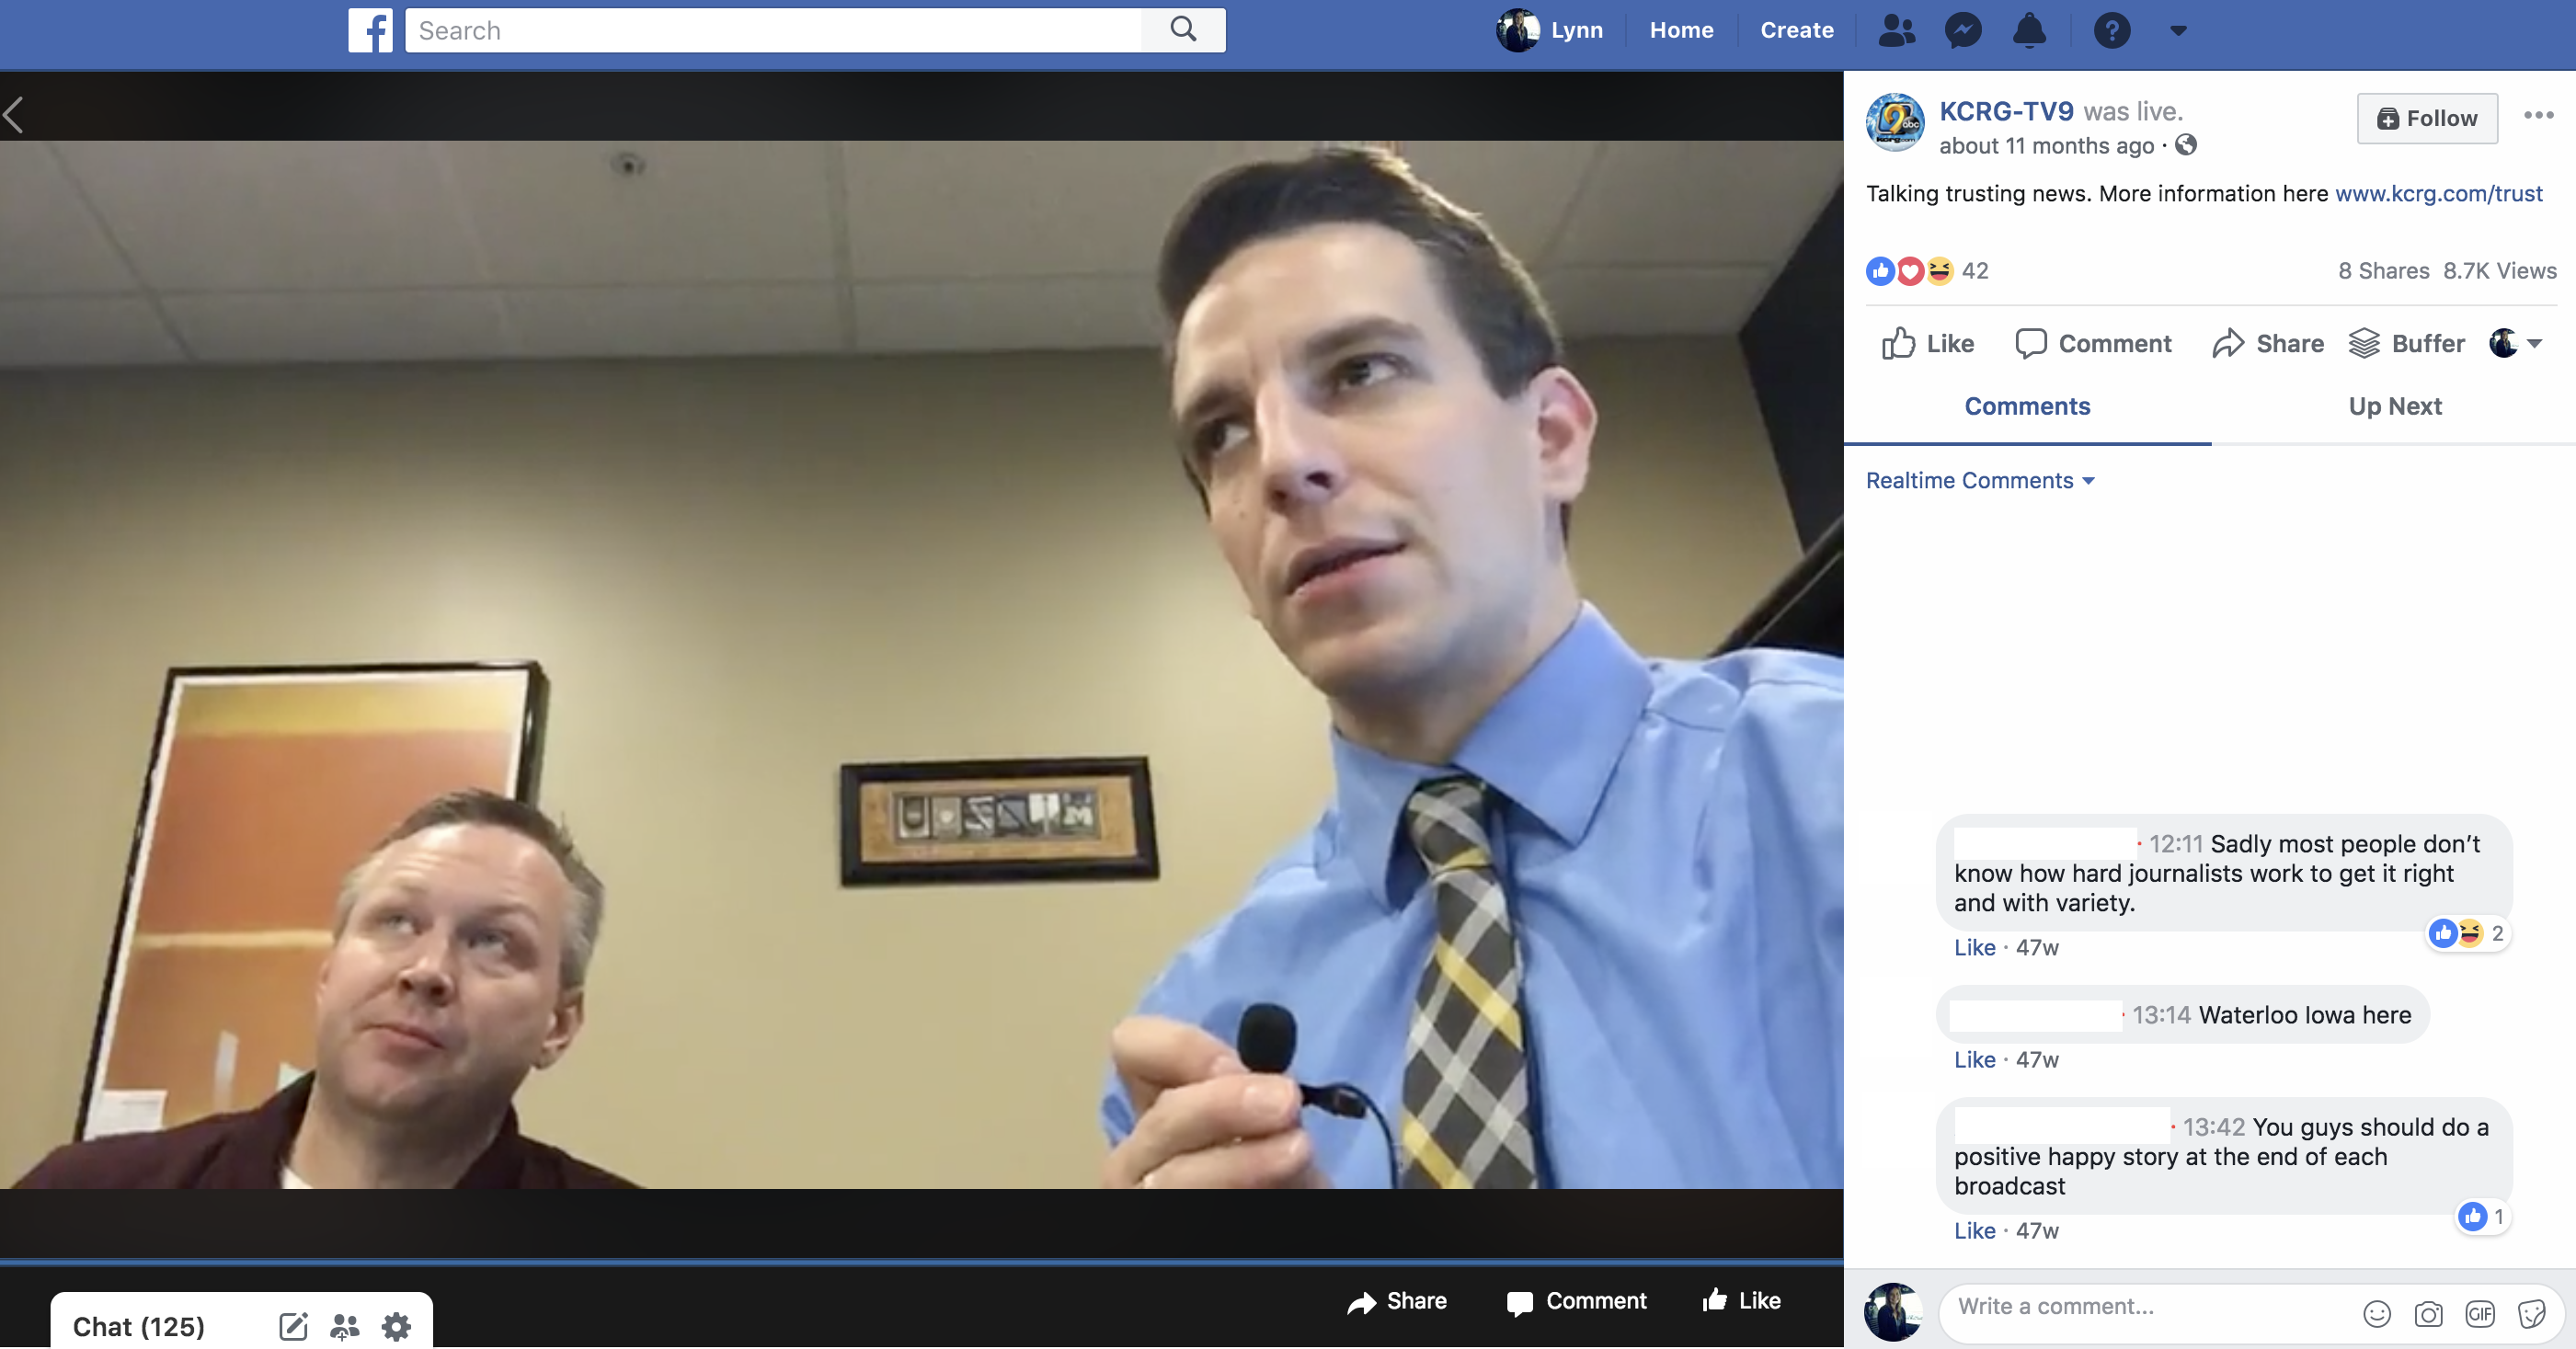 Screenshot from a Facebook LIVE Q&A with KCRG's news director.